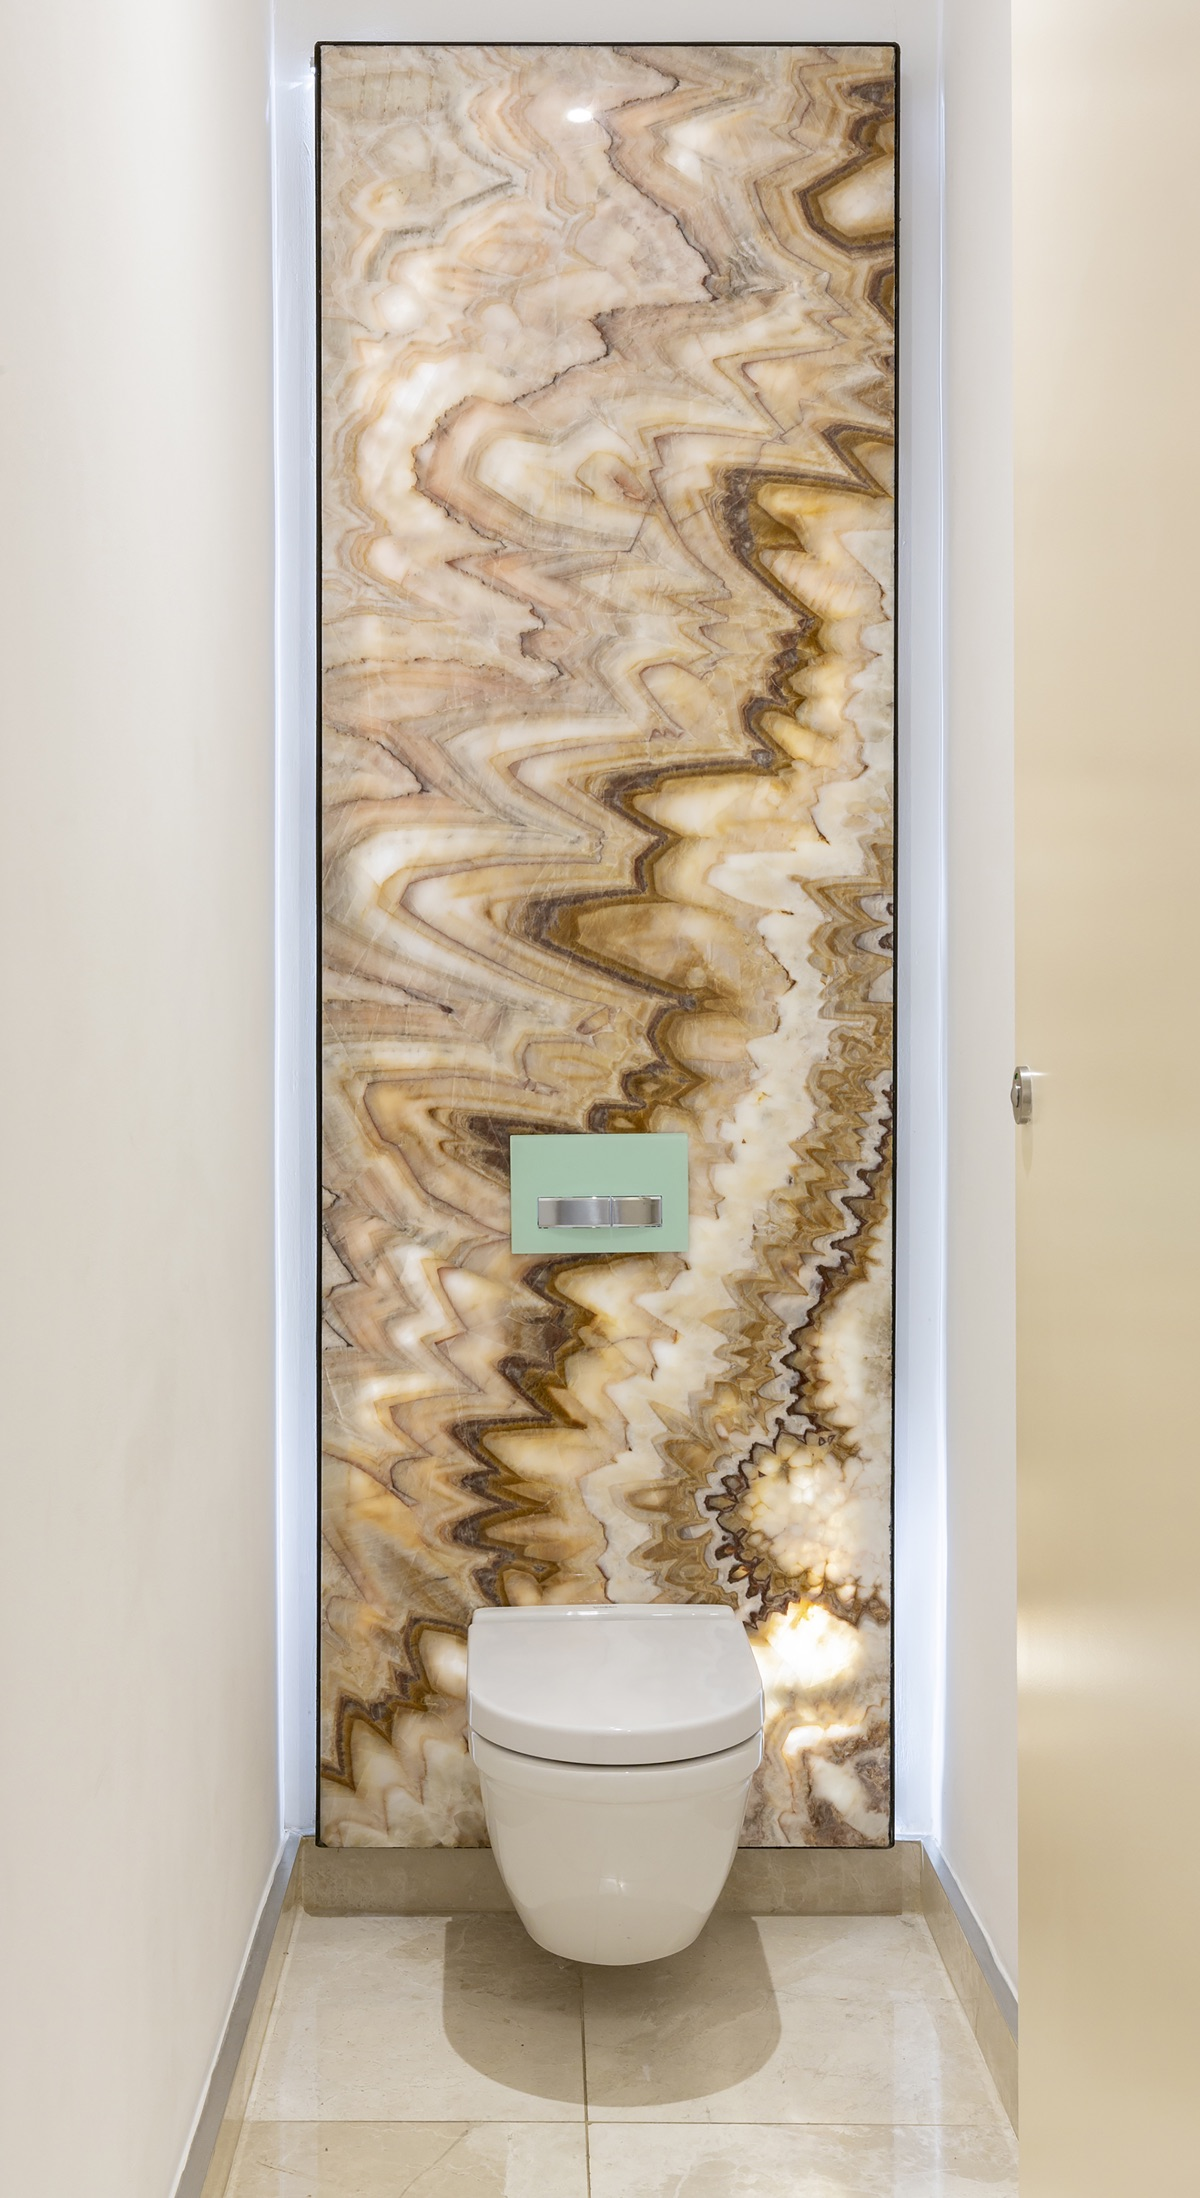 Artmar-MARBLE-SLABS_COMMERCIAL-PROJECT_Lanzerac-Hotel_Honey-Rainbow-Onyx-Feature-wall_supply-fit-2.jpg